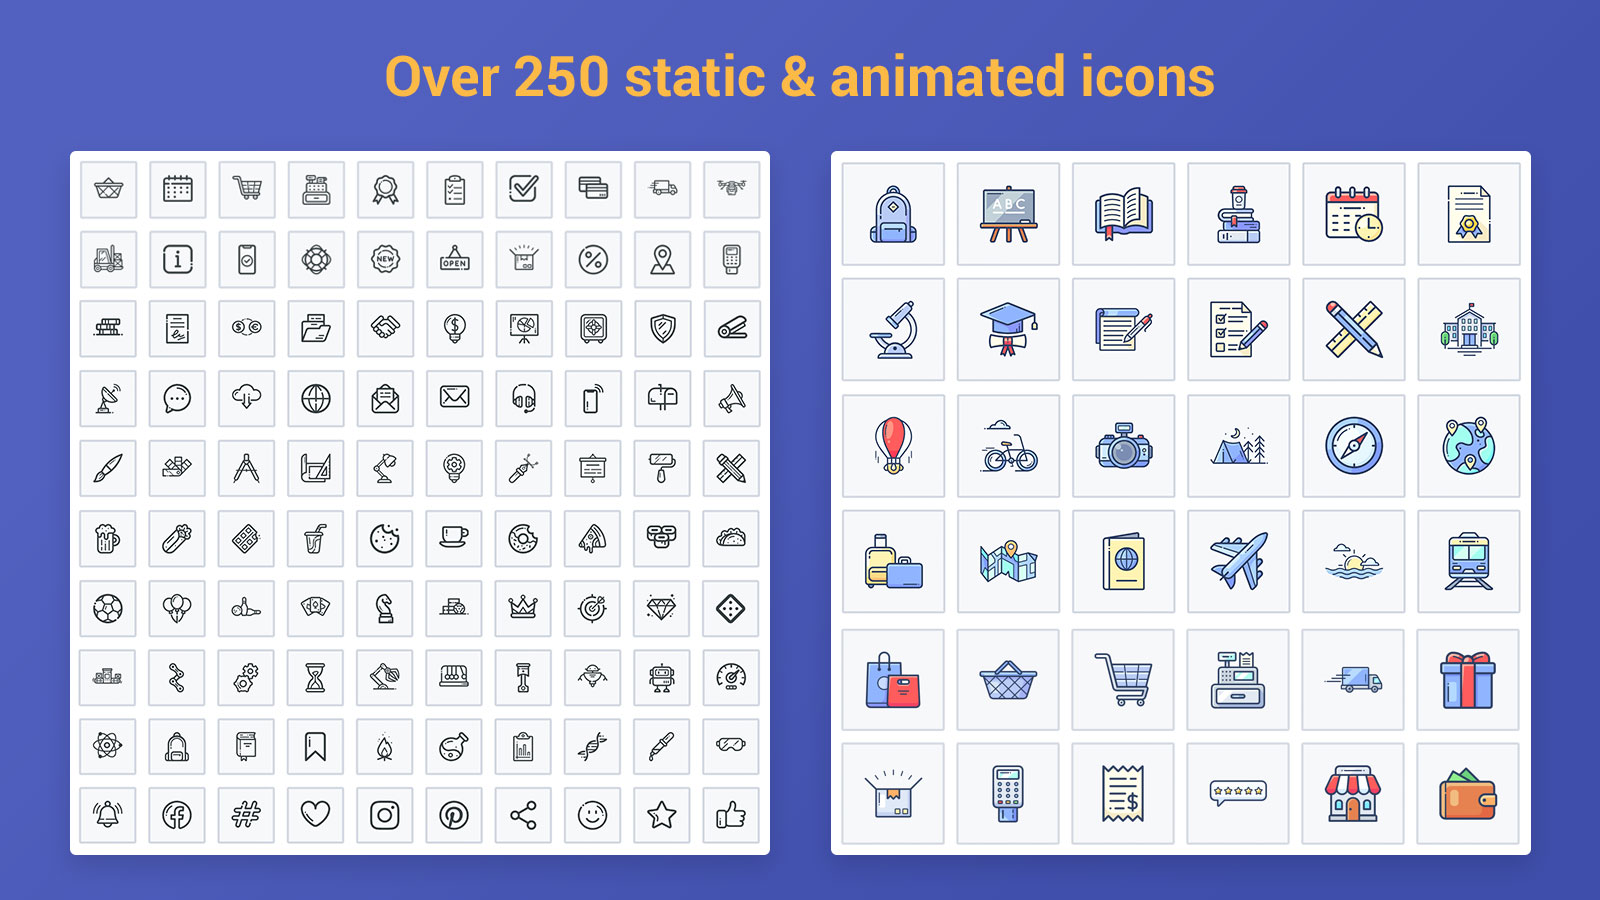 Static and animated icons